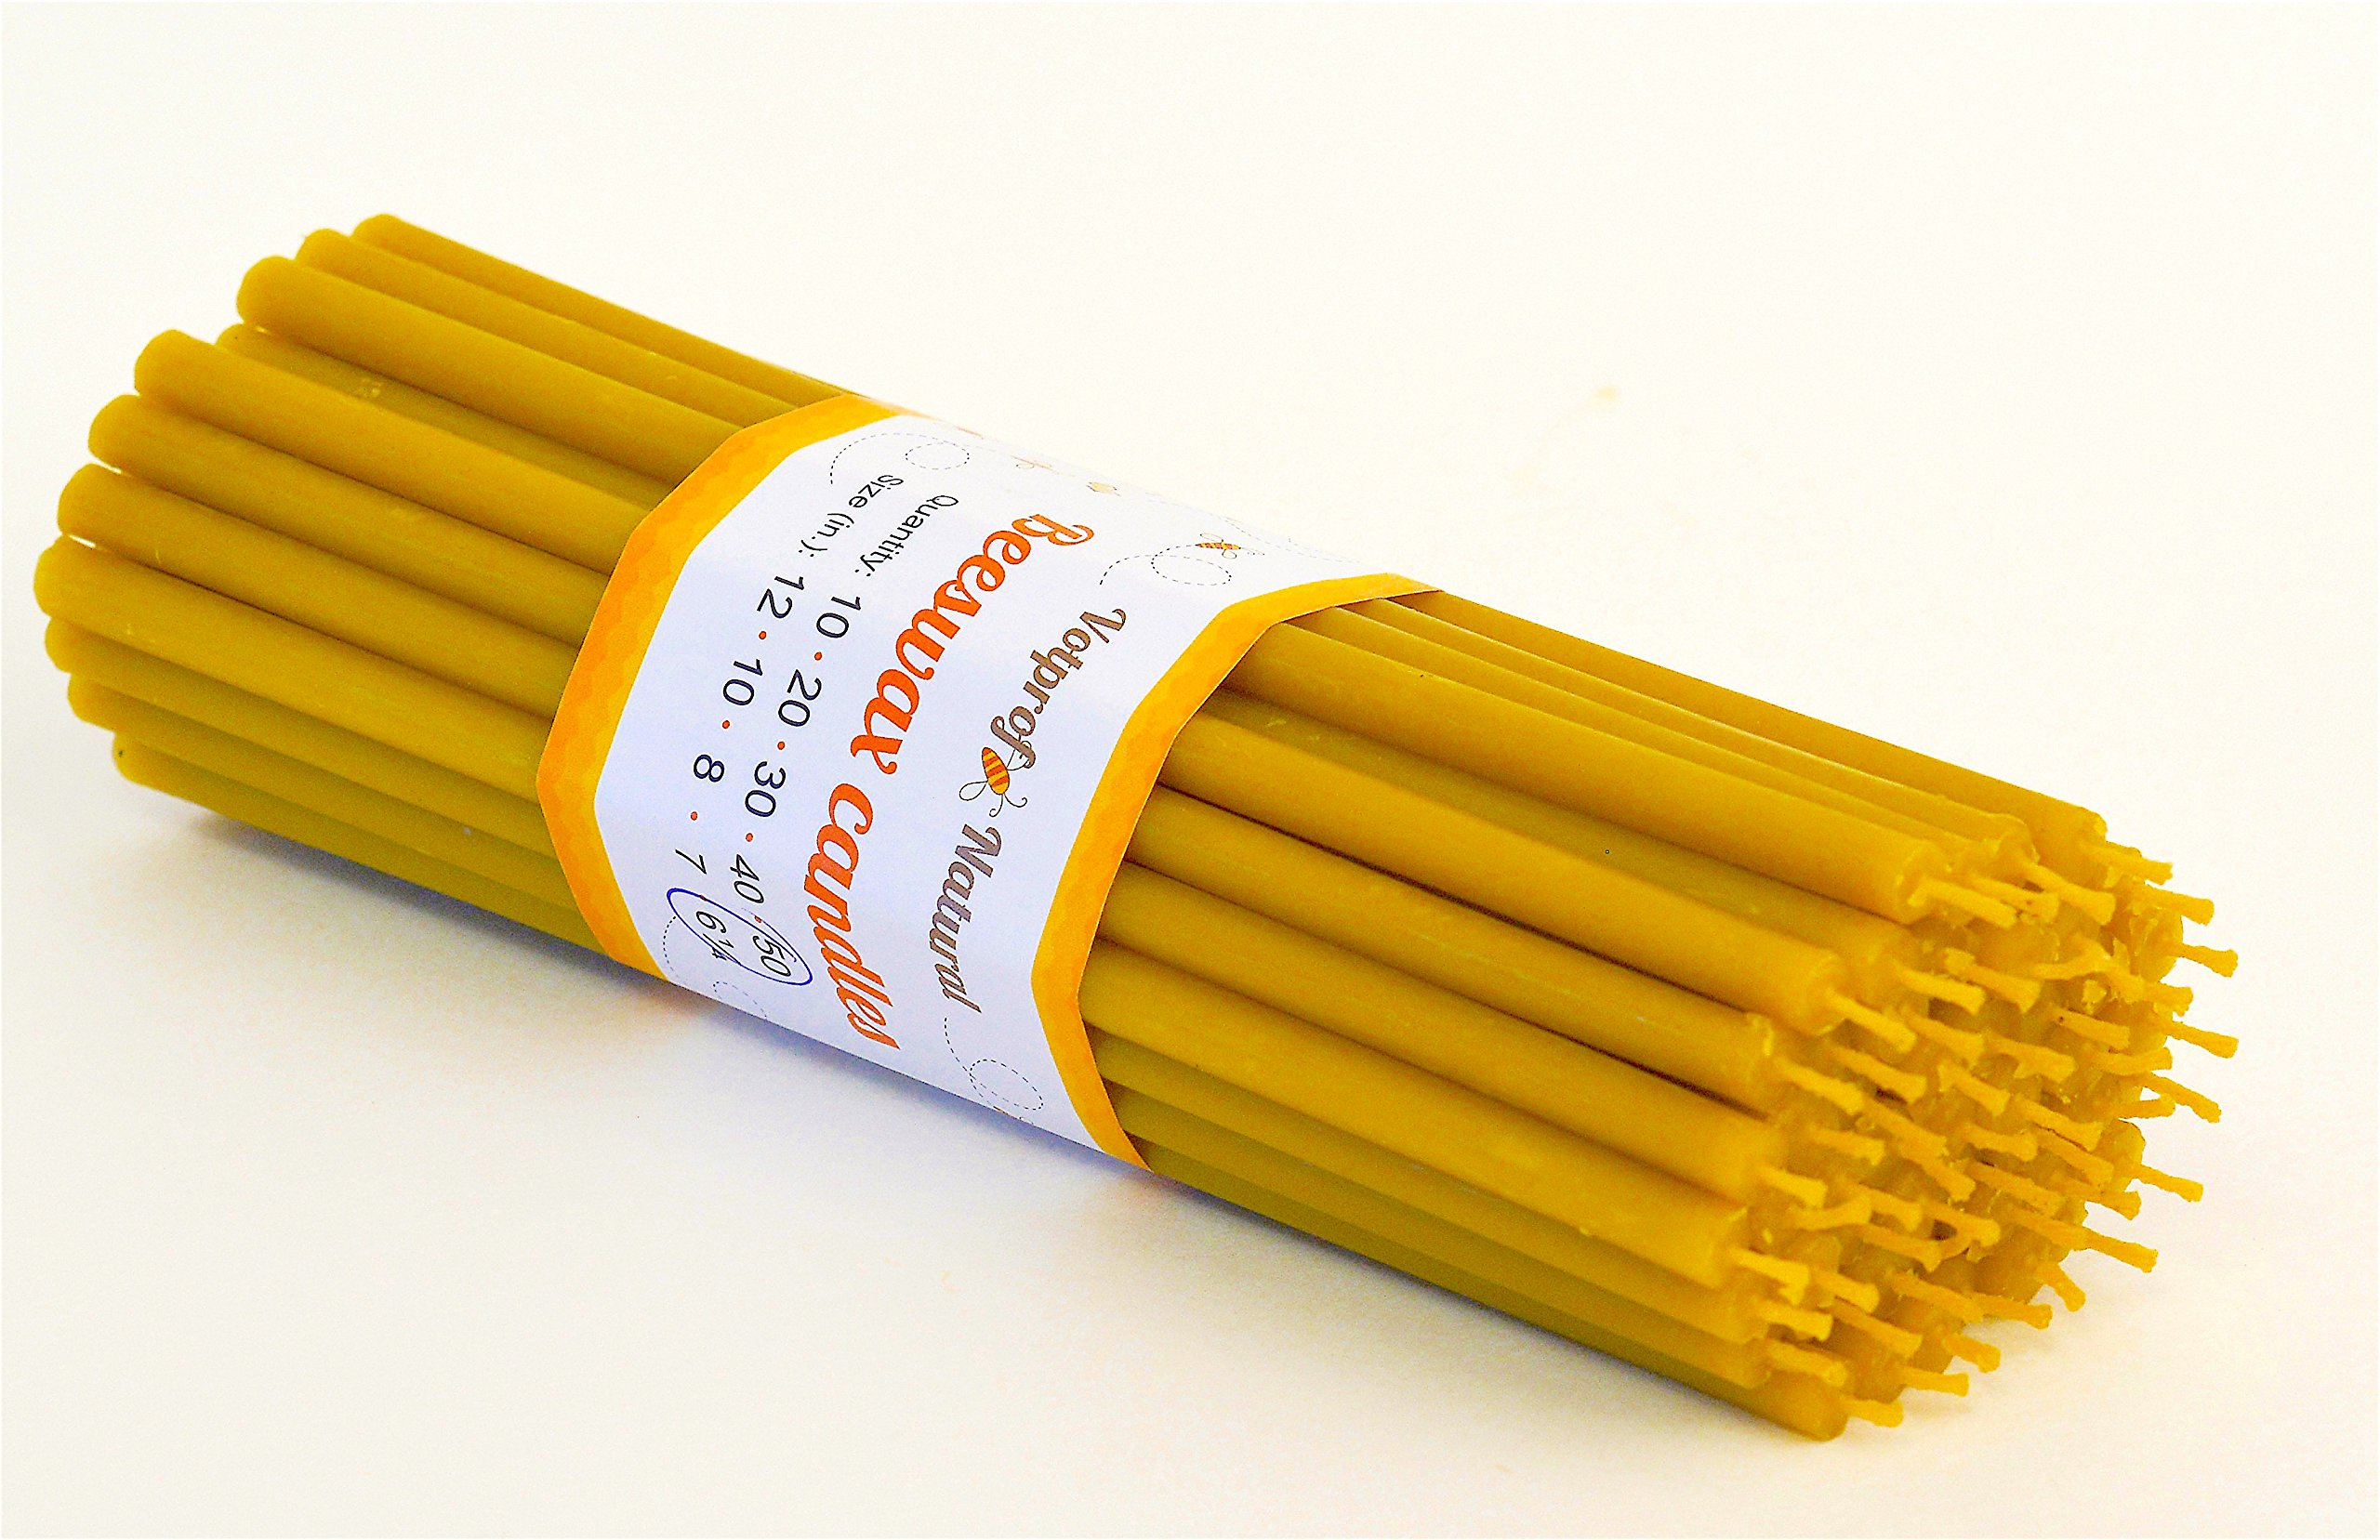 50 Votprof Pure Beeswax Decor Taper Candles ( 6'') Natural Honey Scent Birthday Cake